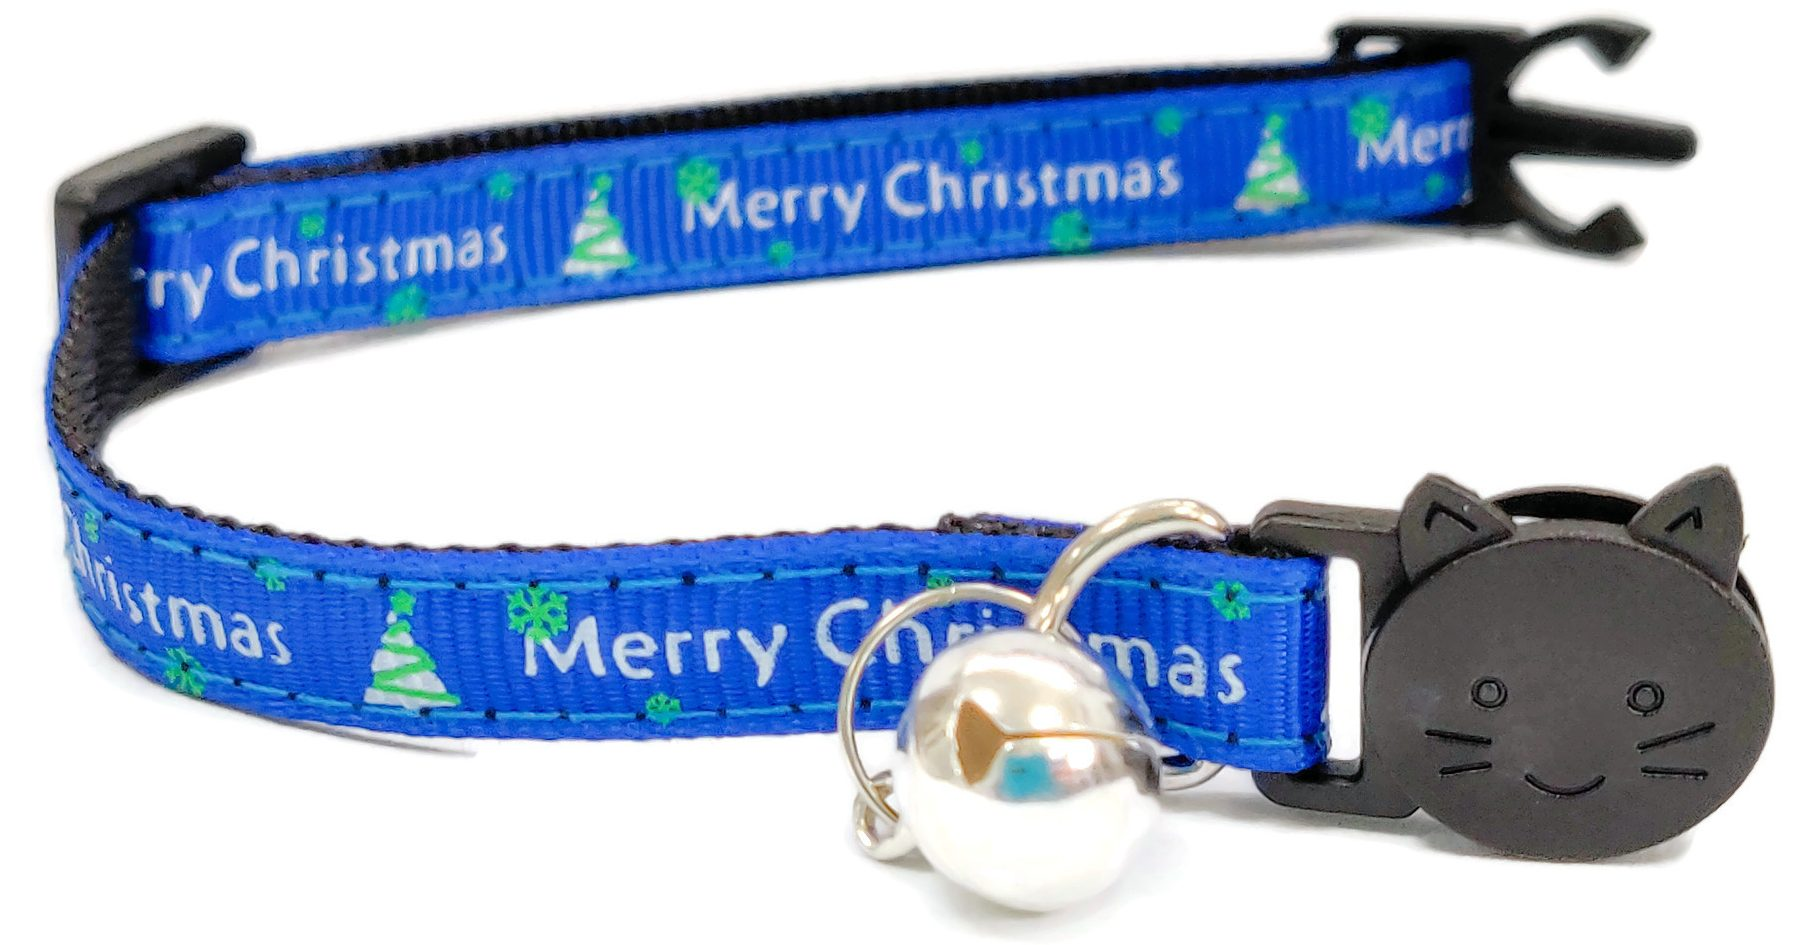 Christmas Collar – Blue with 'Merry Christmas' and Christmas Trees